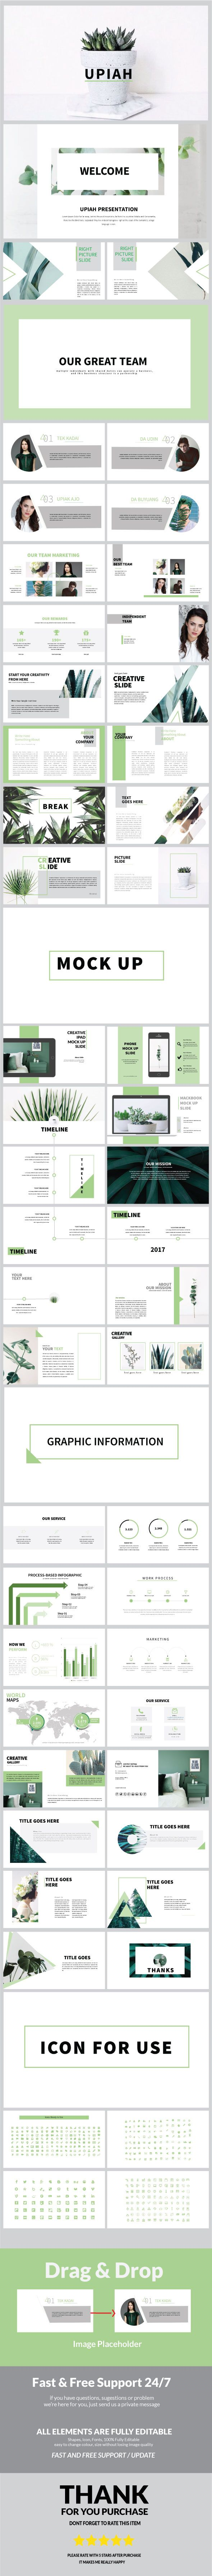 Upiah Multipurpose #Powerpoint - #Business PowerPoint #Templates Download here: https://graphicriver.net/item/upiah-multipurpose-powerpoint/19391724?ref=alena994